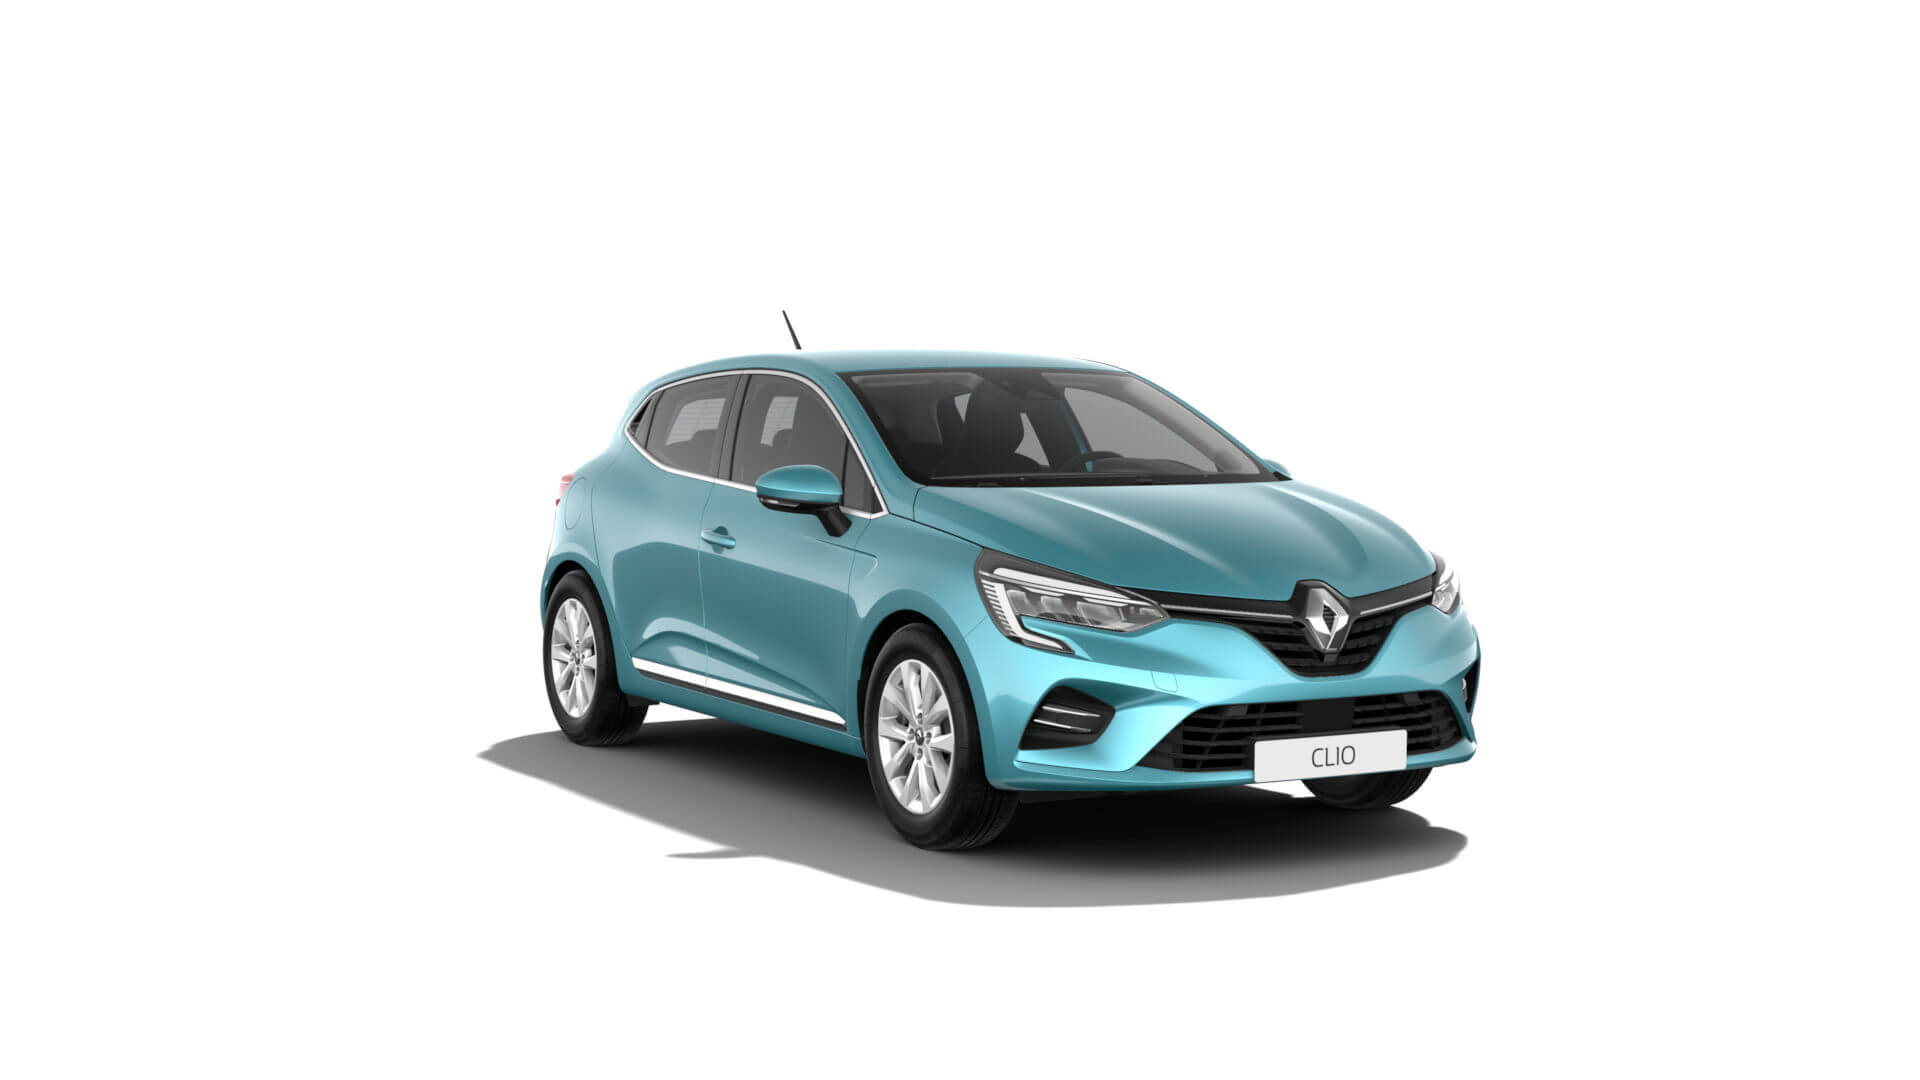 Automodell türkis - Renault Clio - Renault Ahrens Hannover